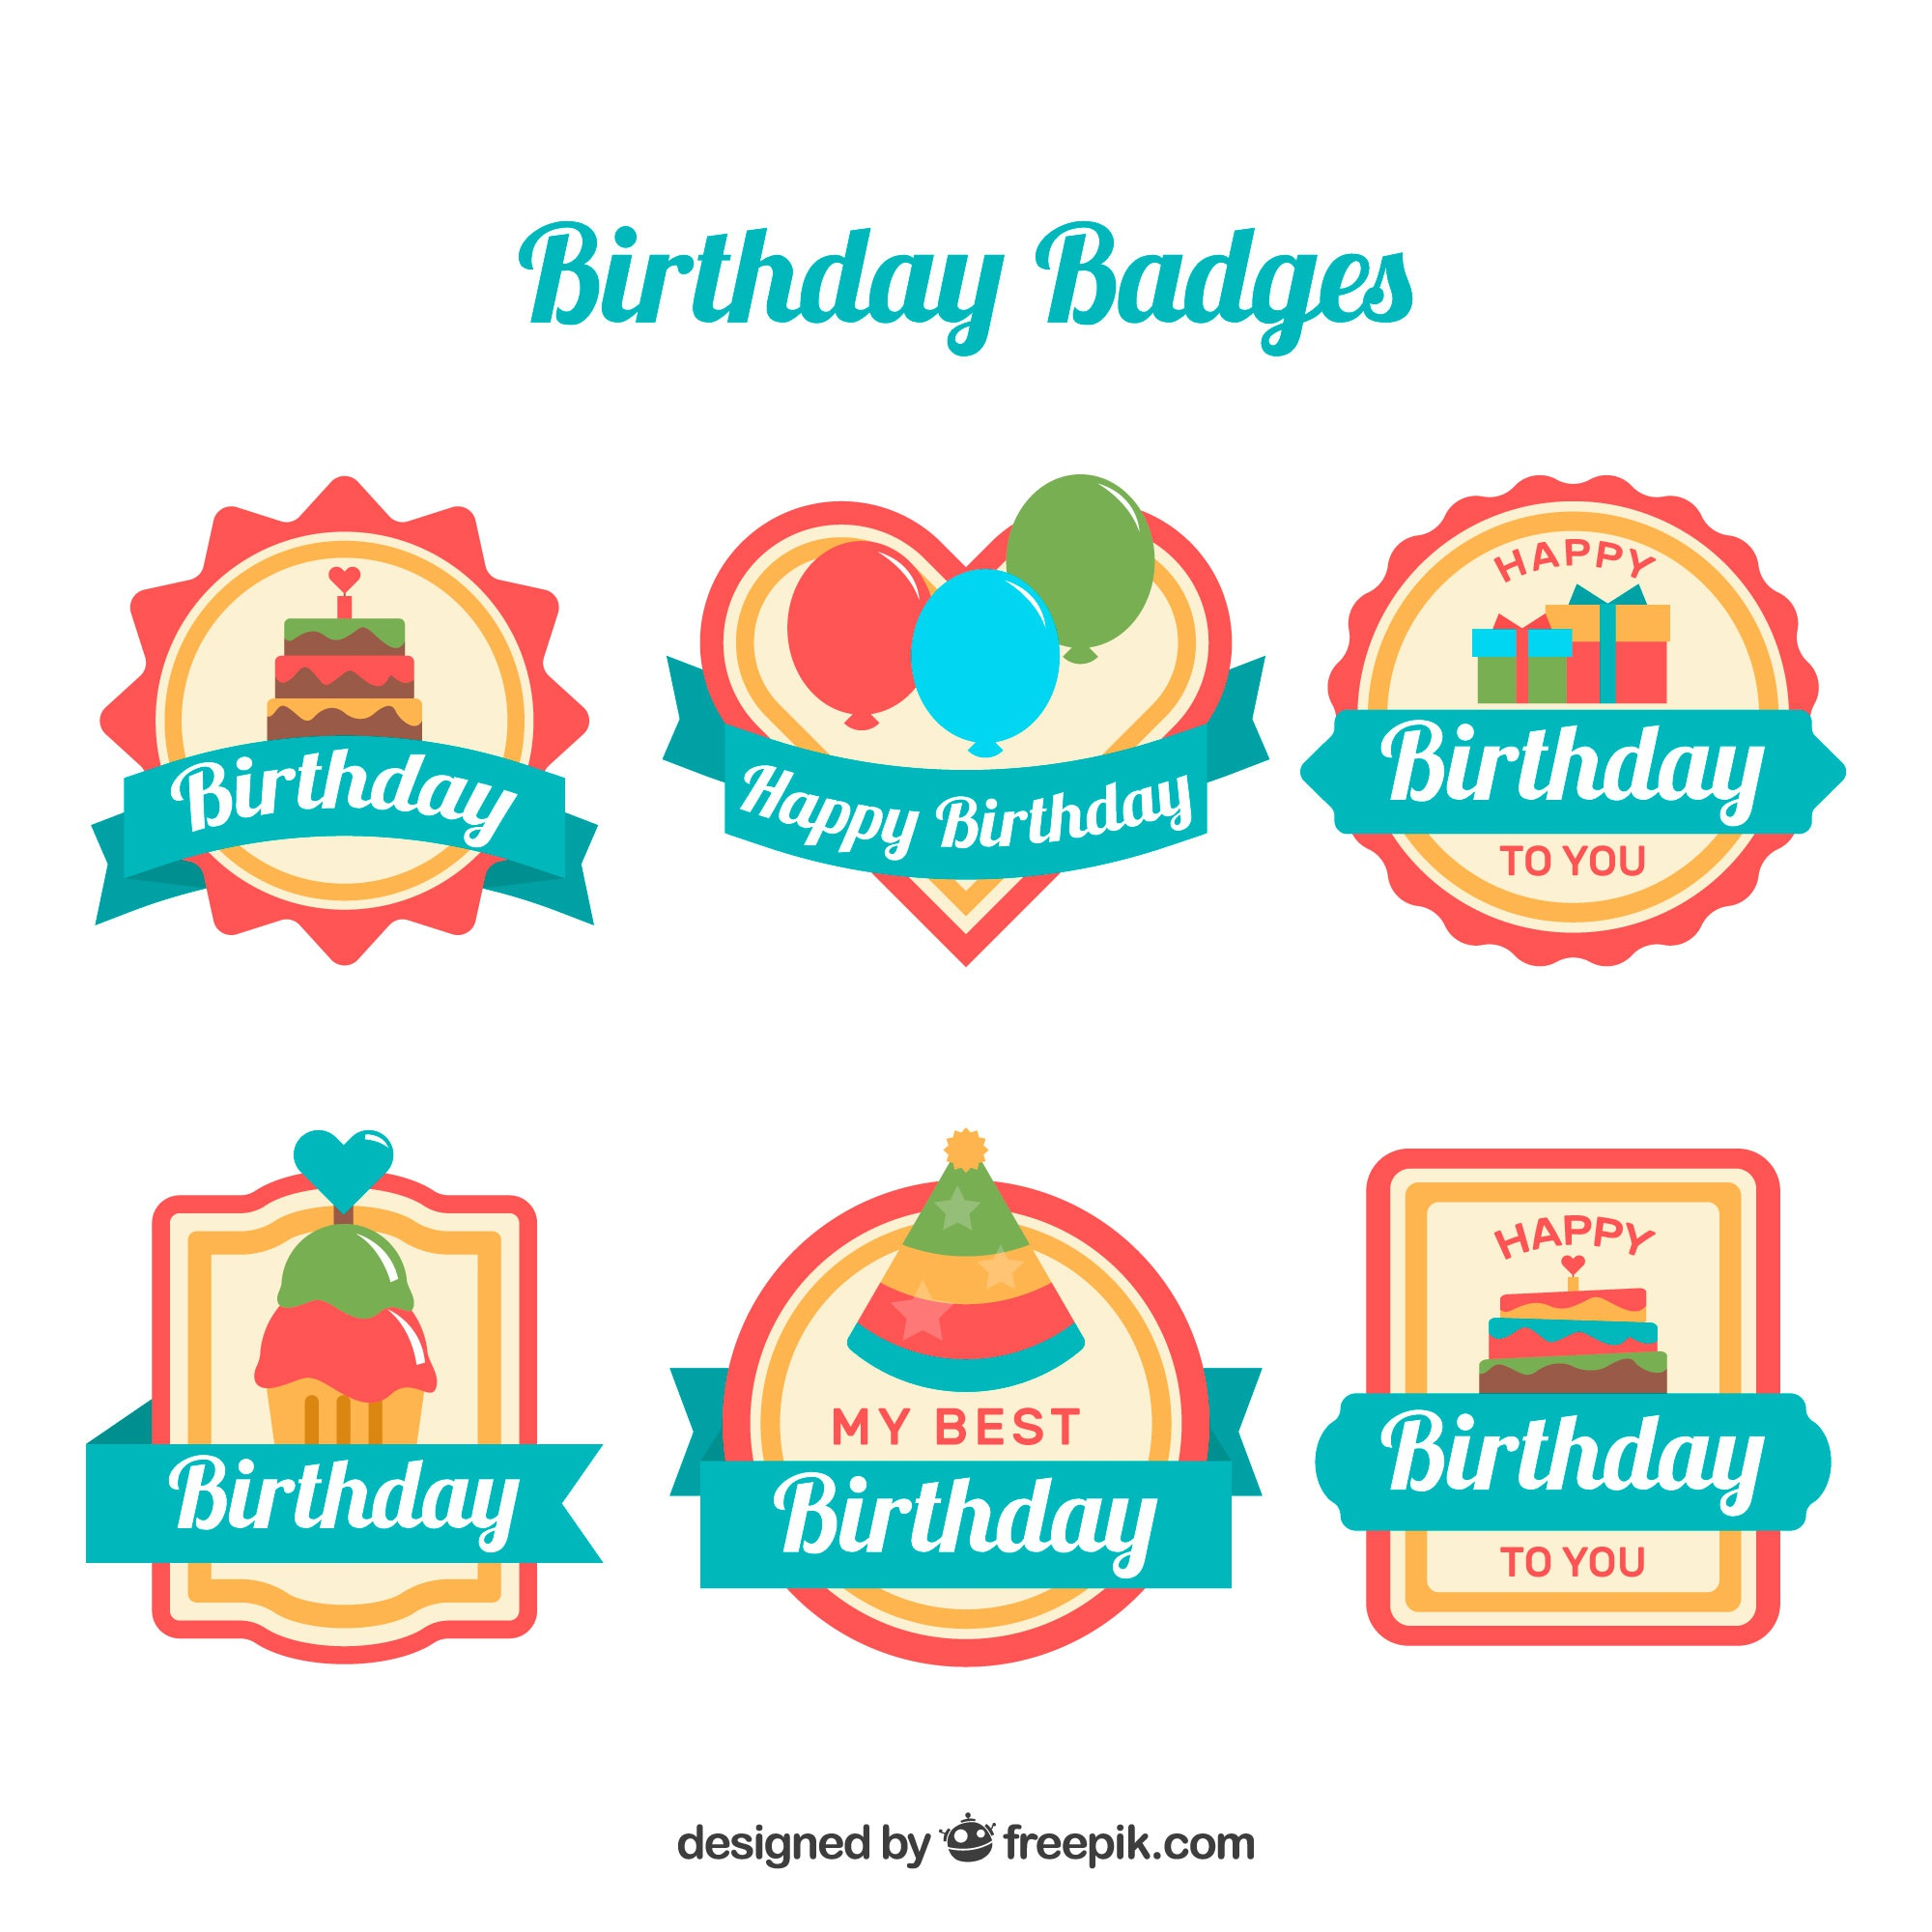 Birthday badges for children collection